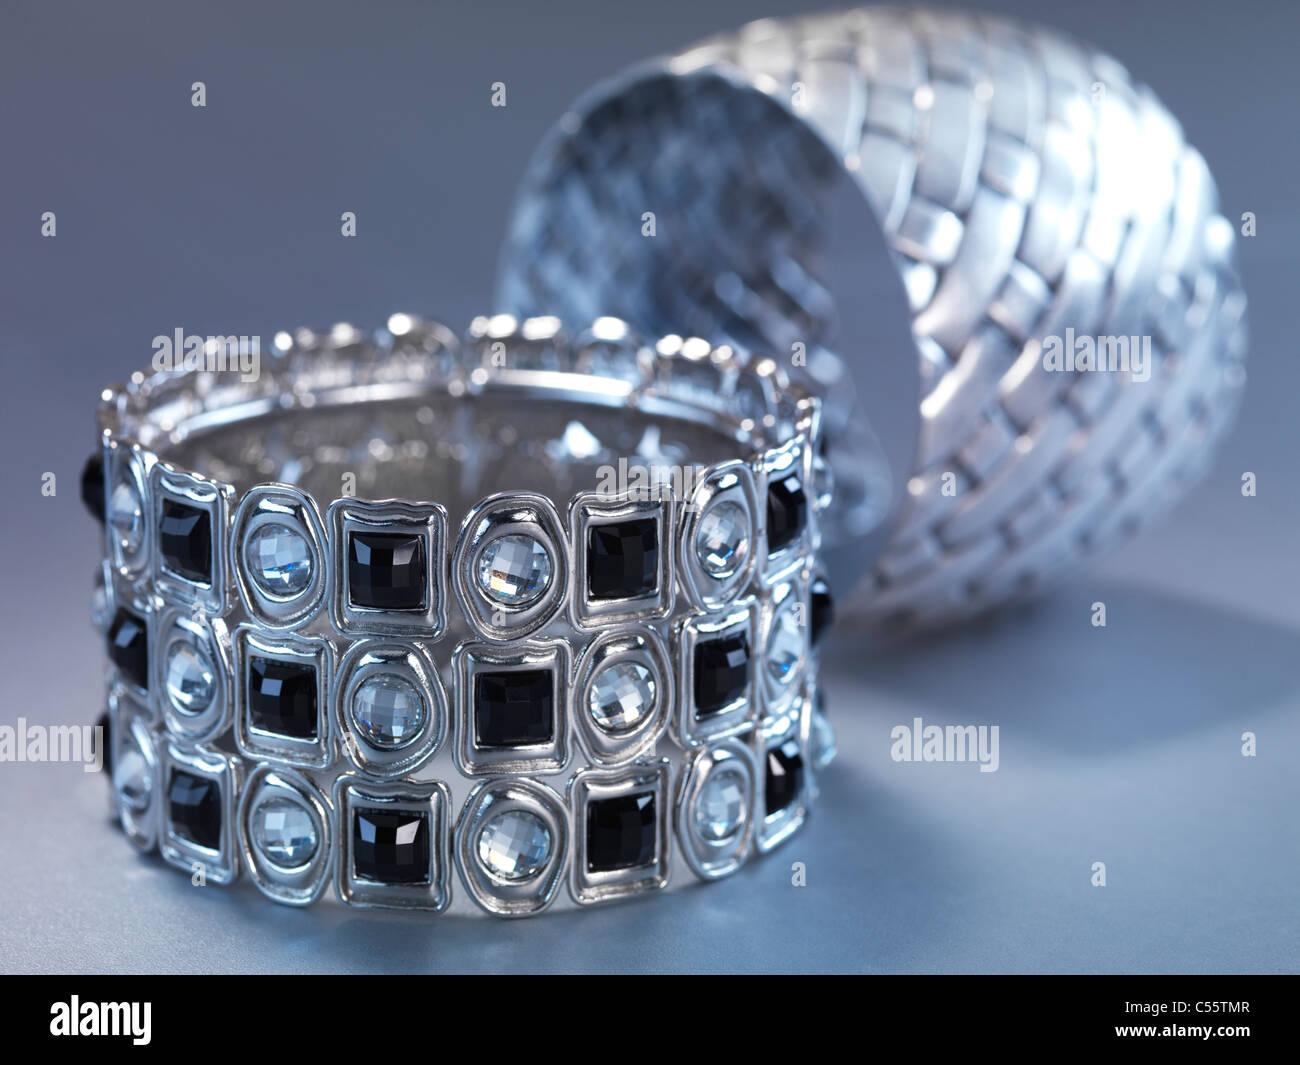 Two bracelets jewellery isolated on gray background - Stock Image